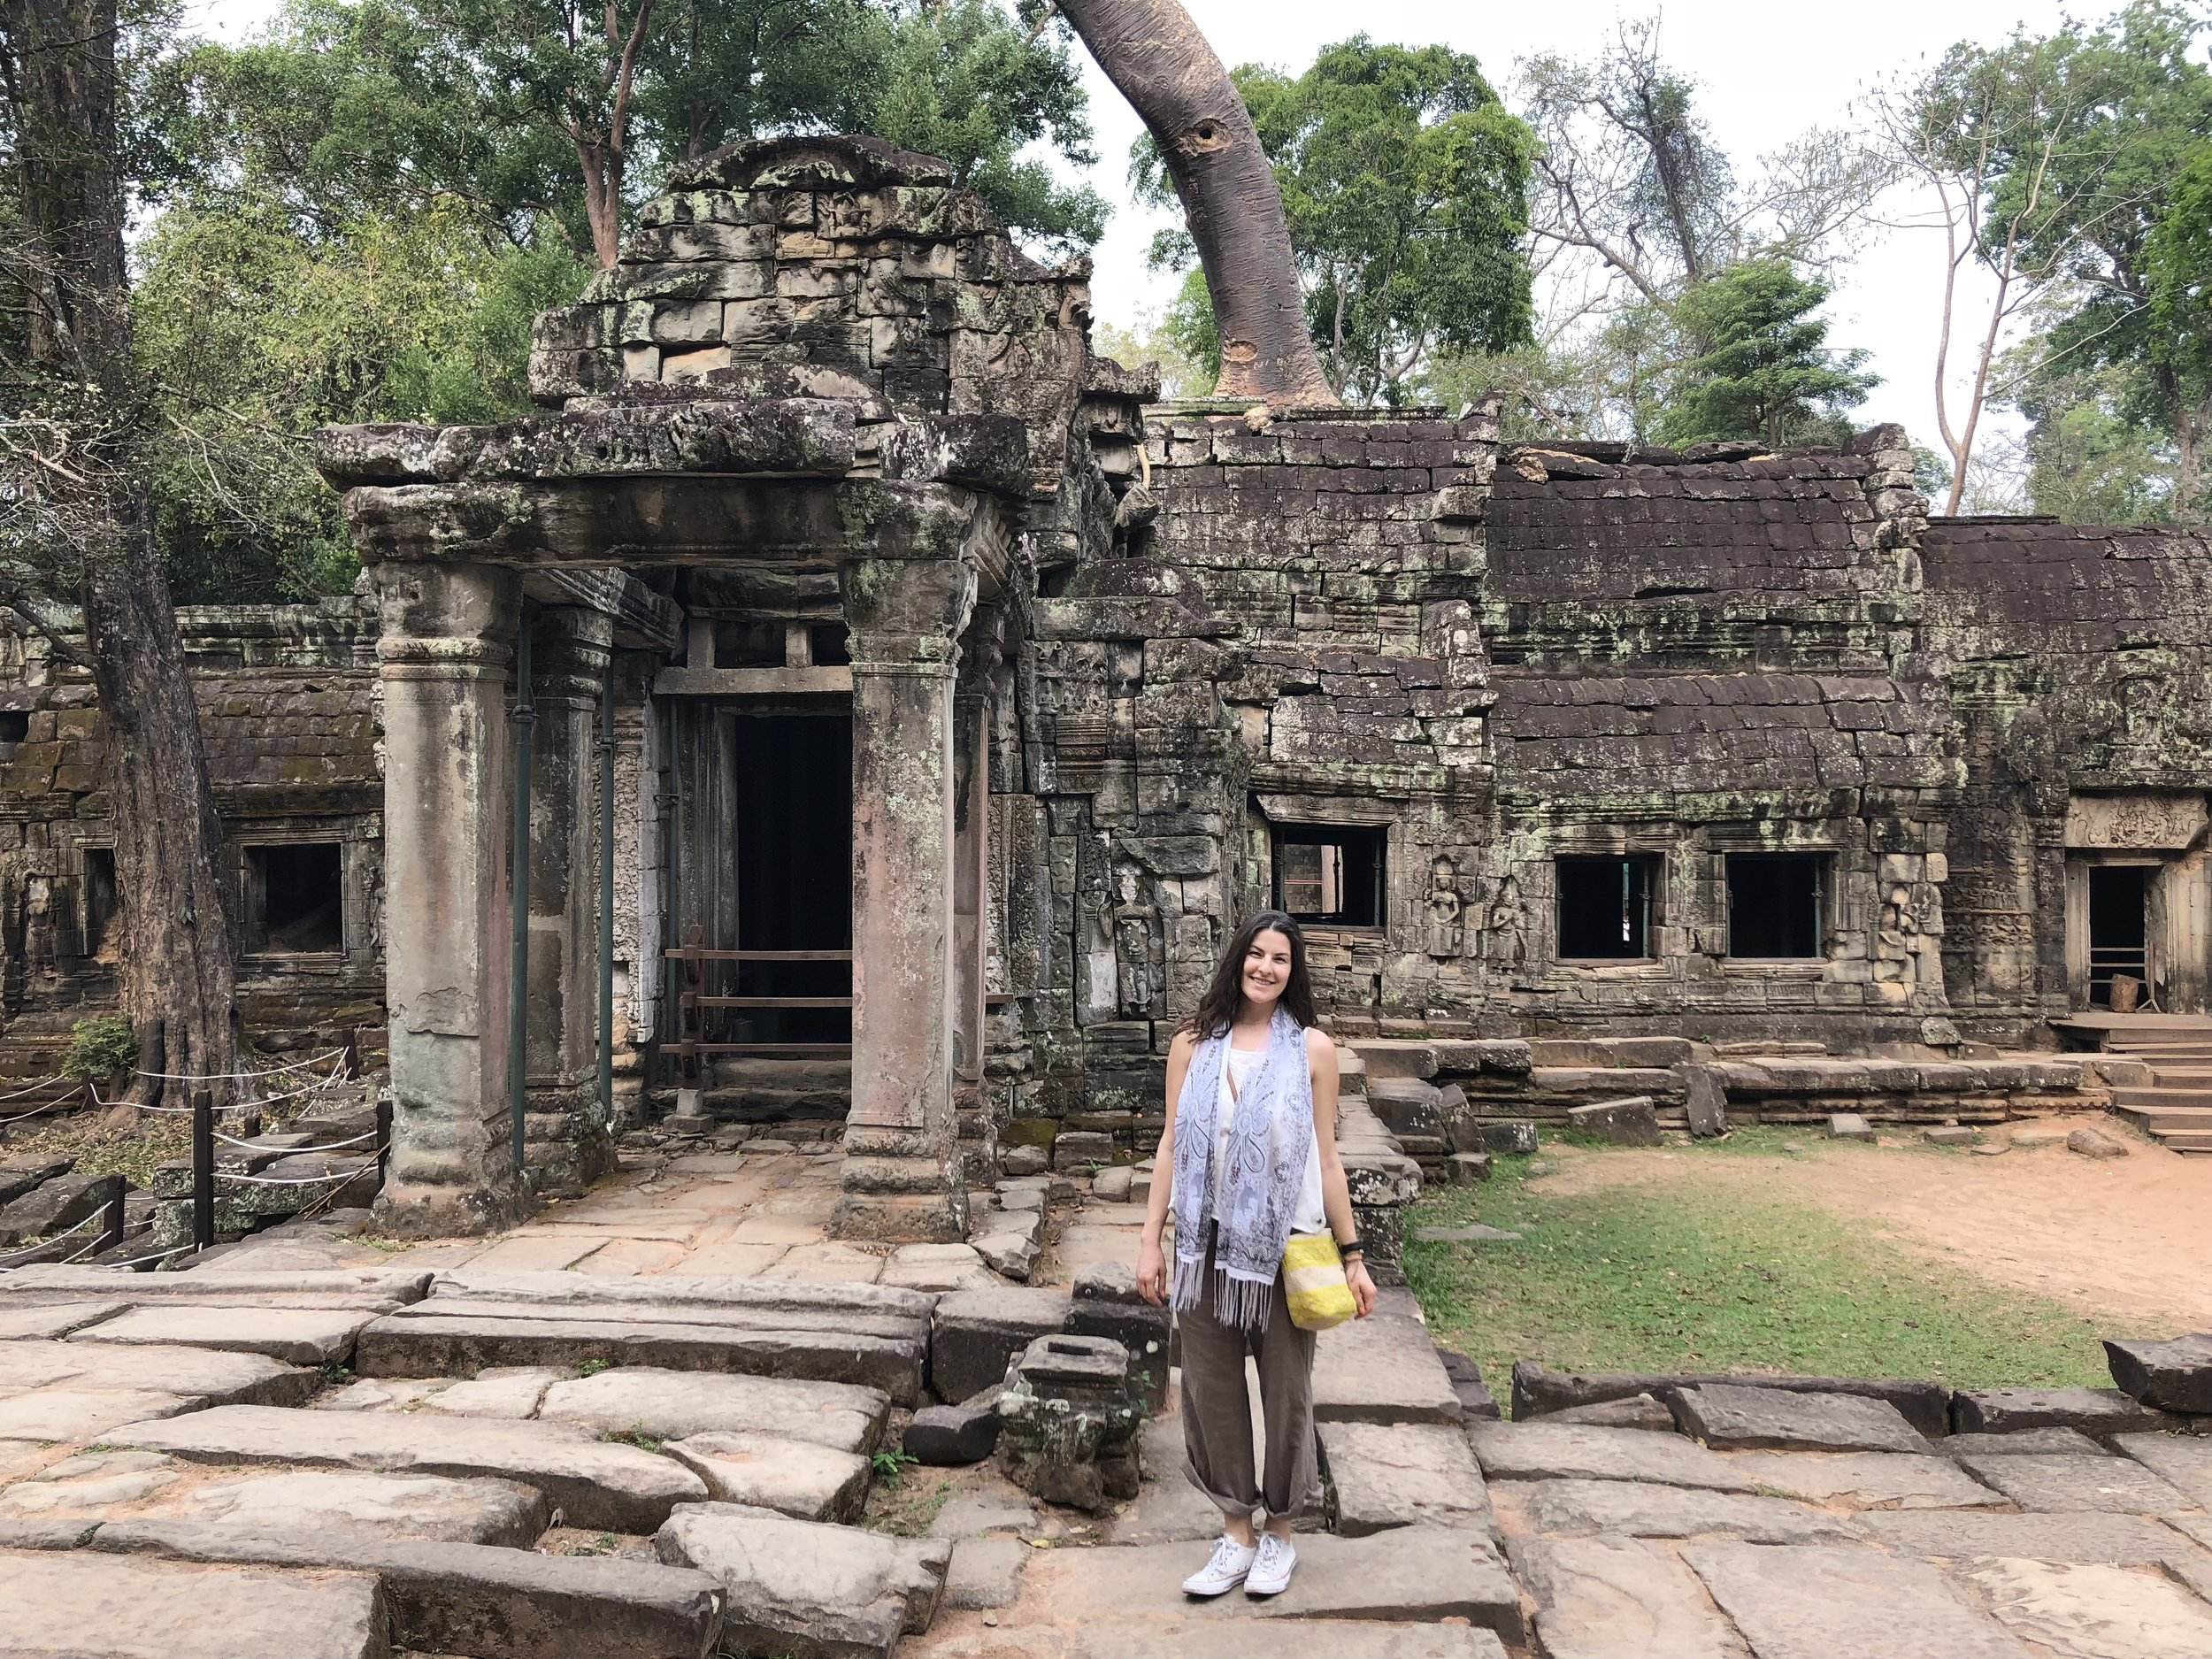 Flowy pants, a shoulder scarf, and comfy walking shoes for our temple tour through Angkor Watt.